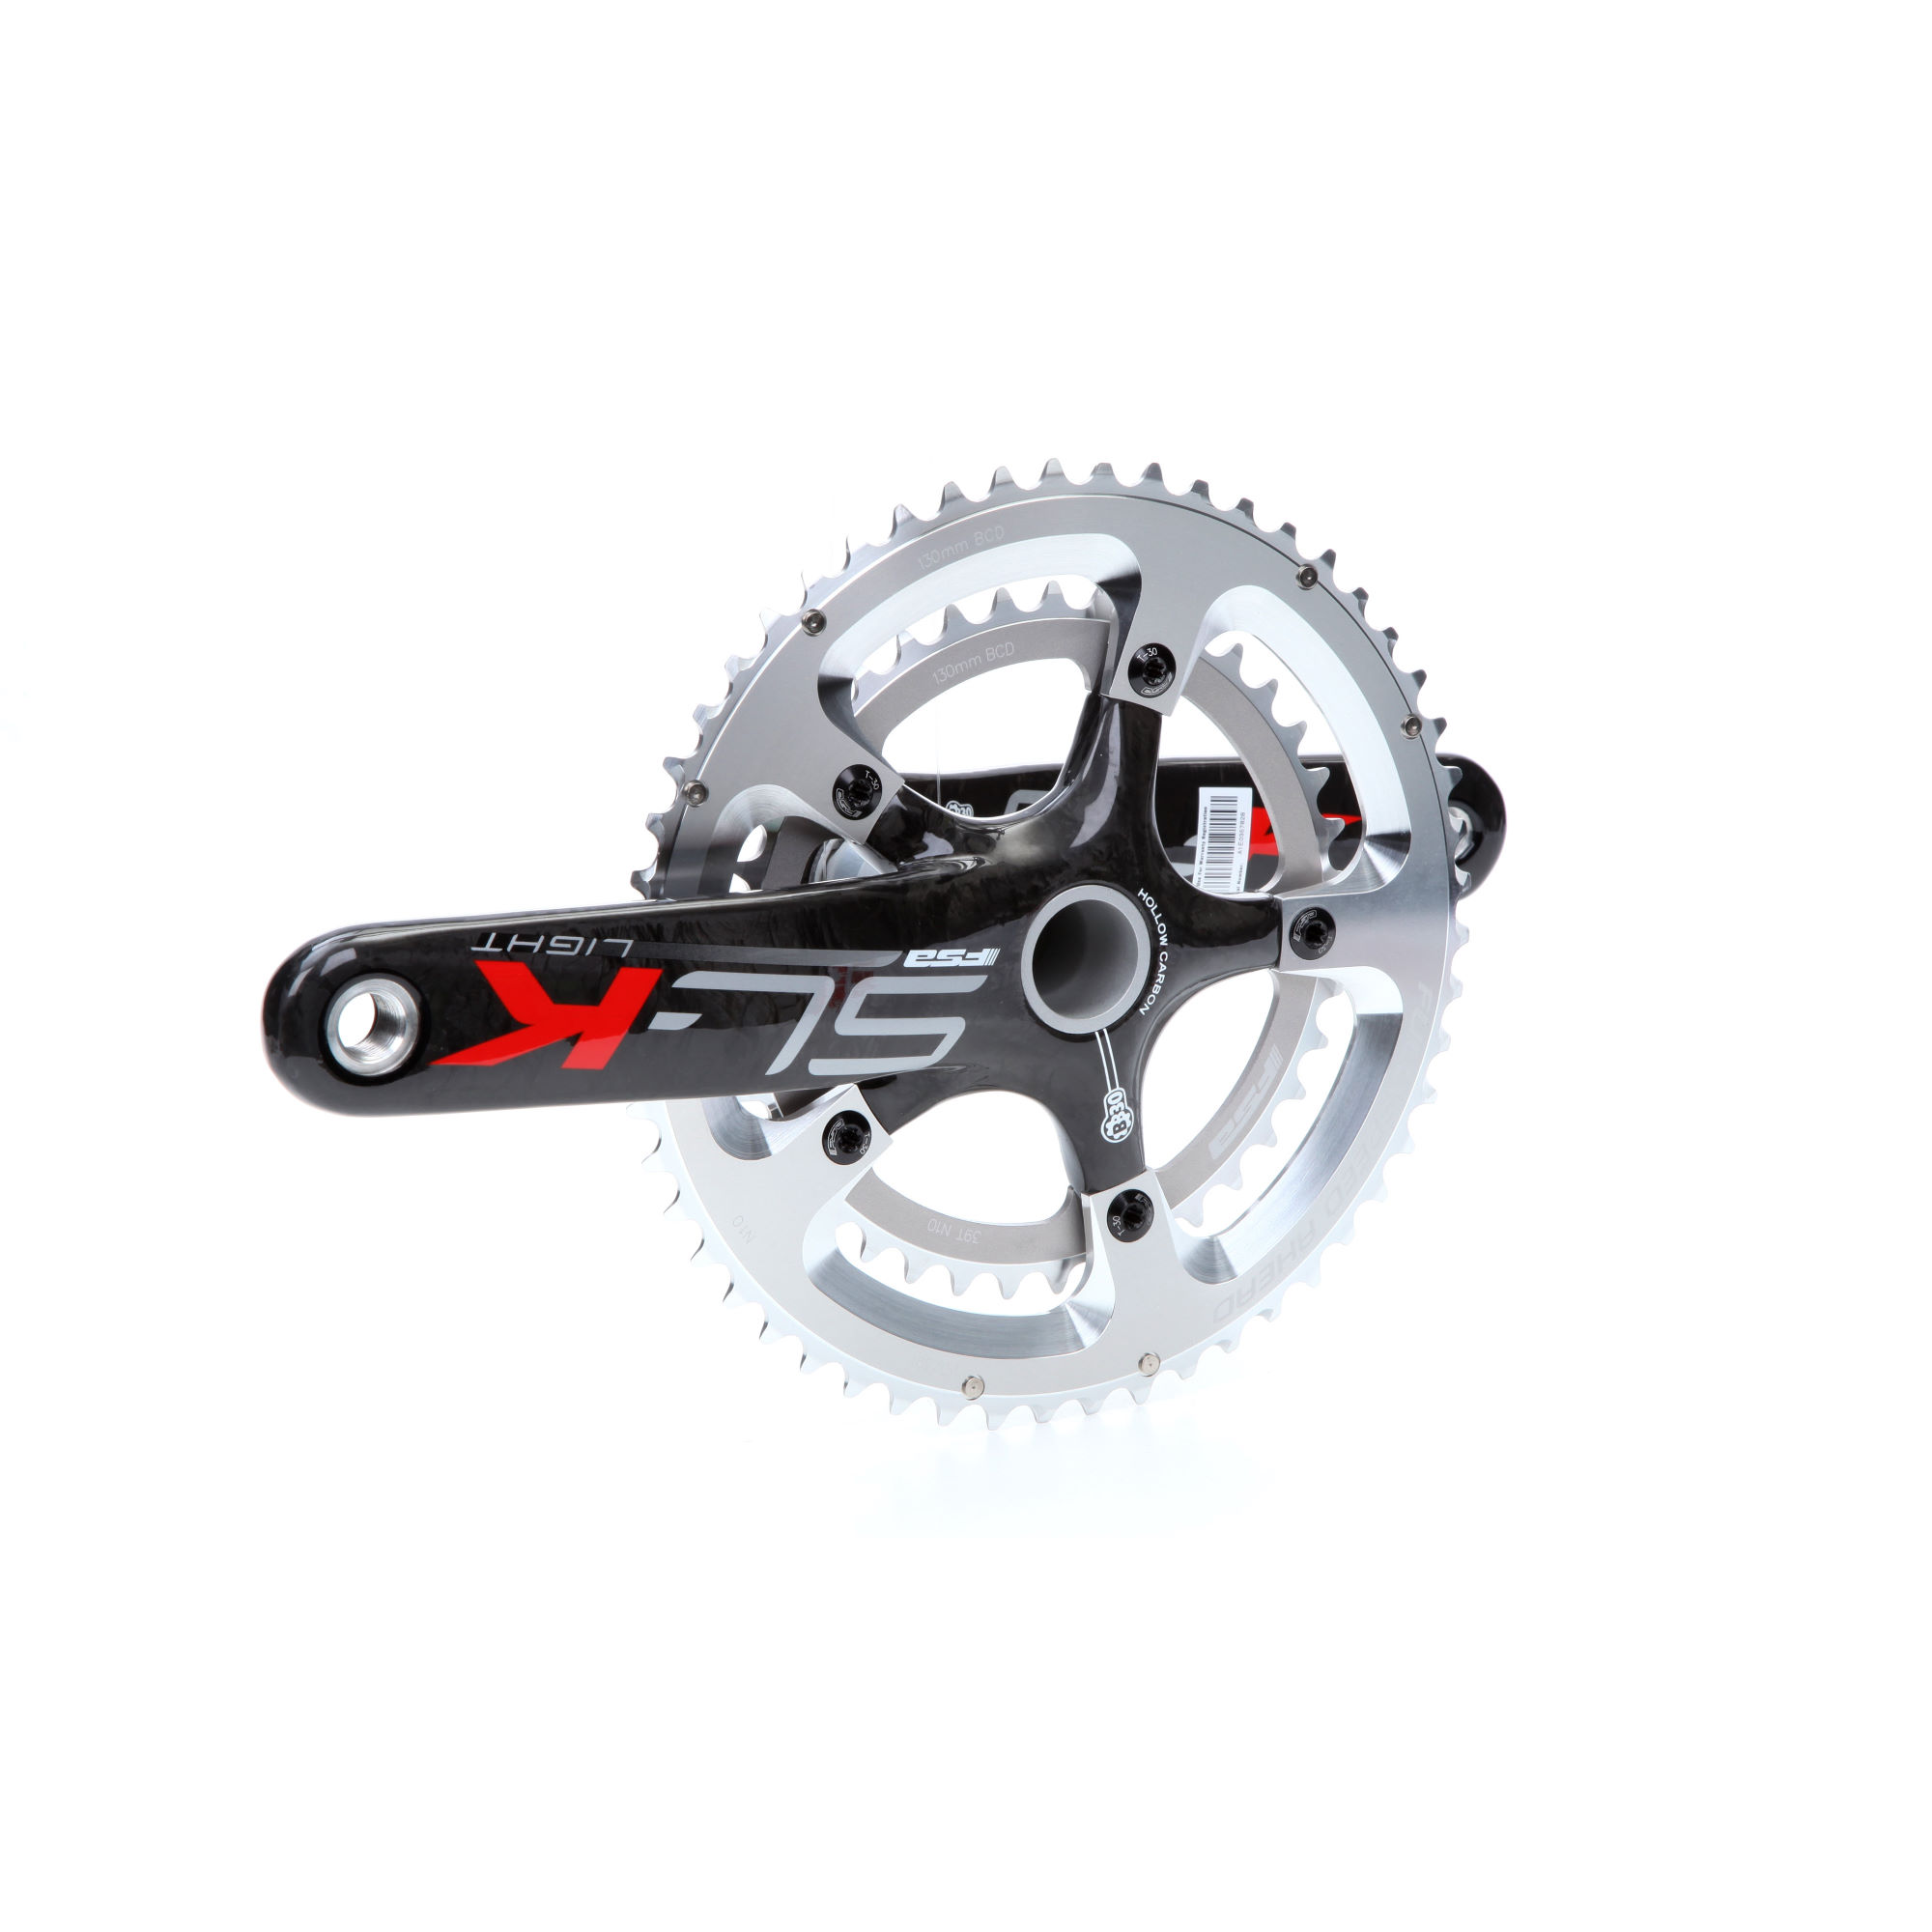 So how does the new FSA SL-K Light crank compare to the ...